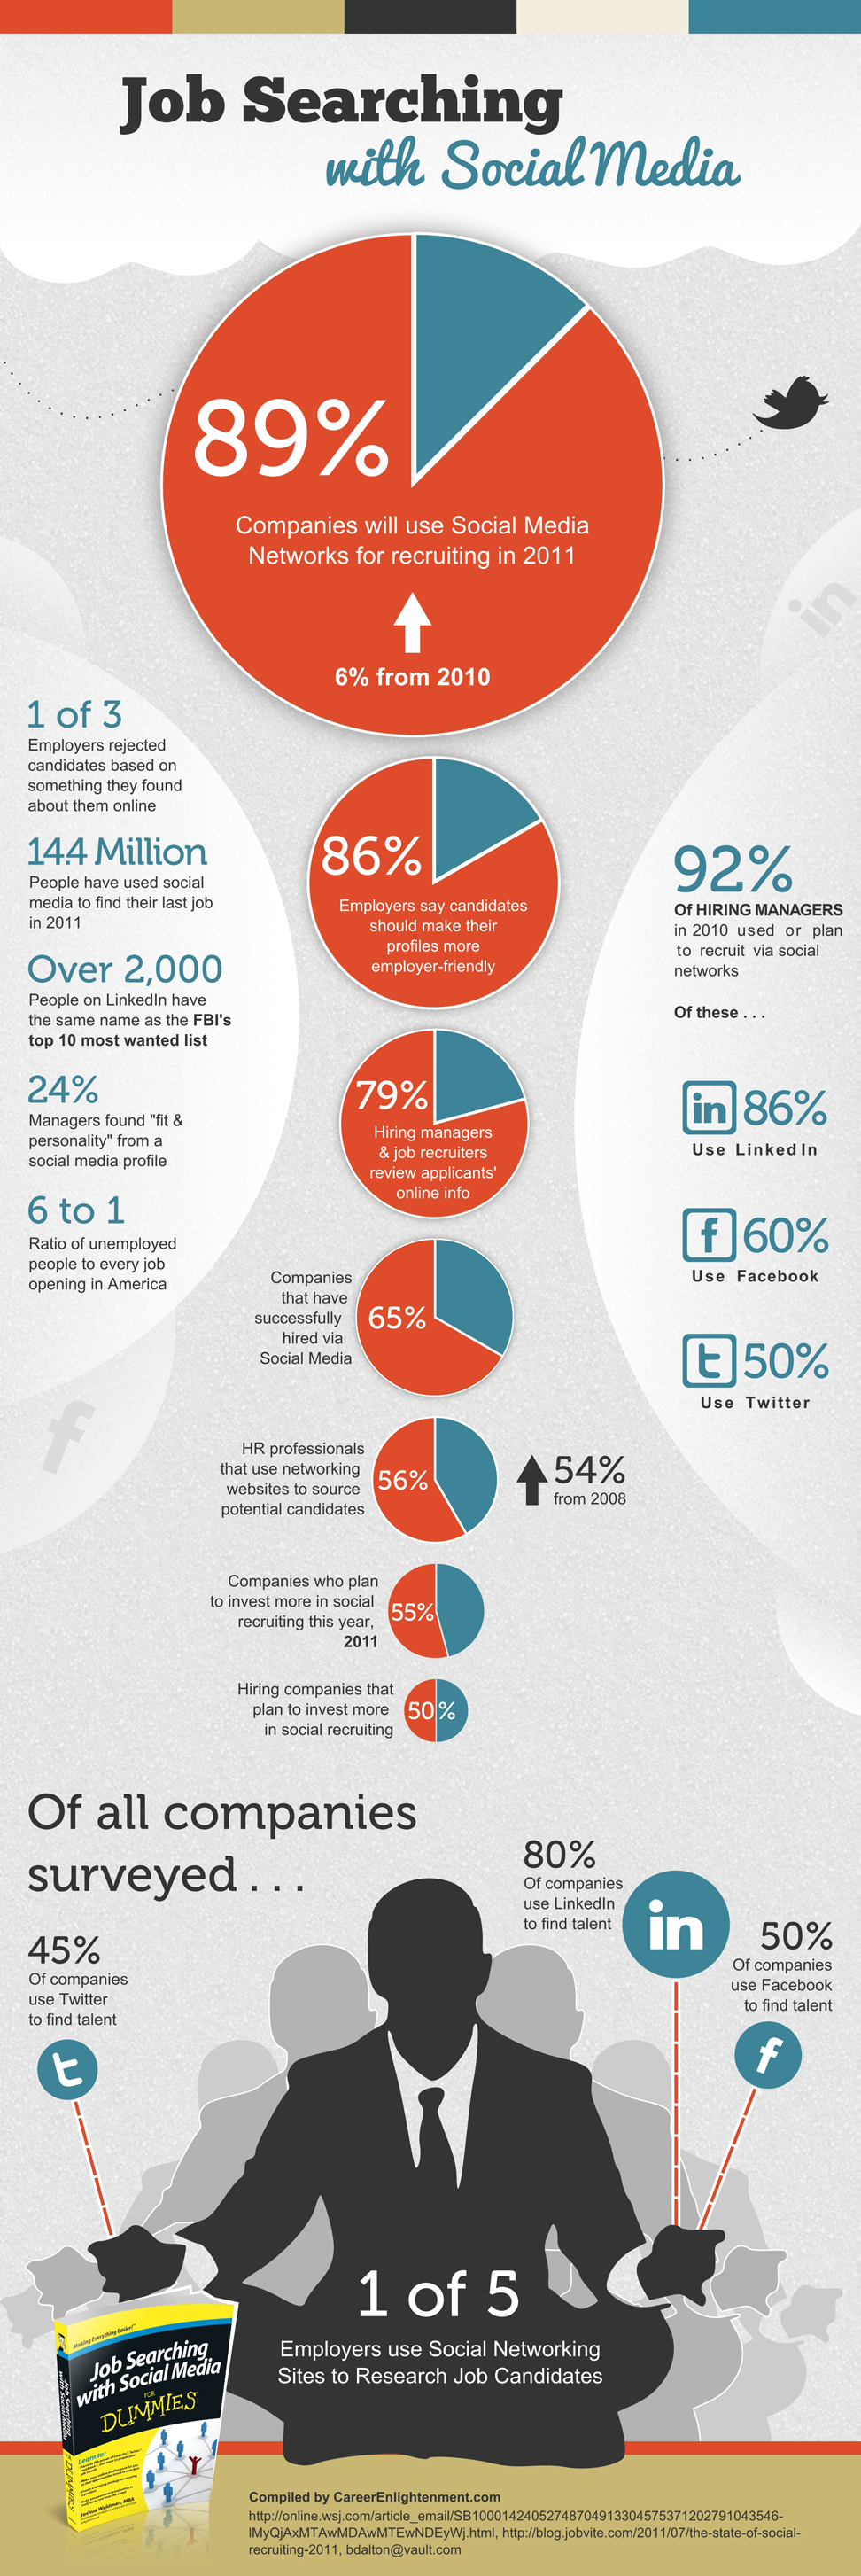 social media recruiting infographic medical device recruiters